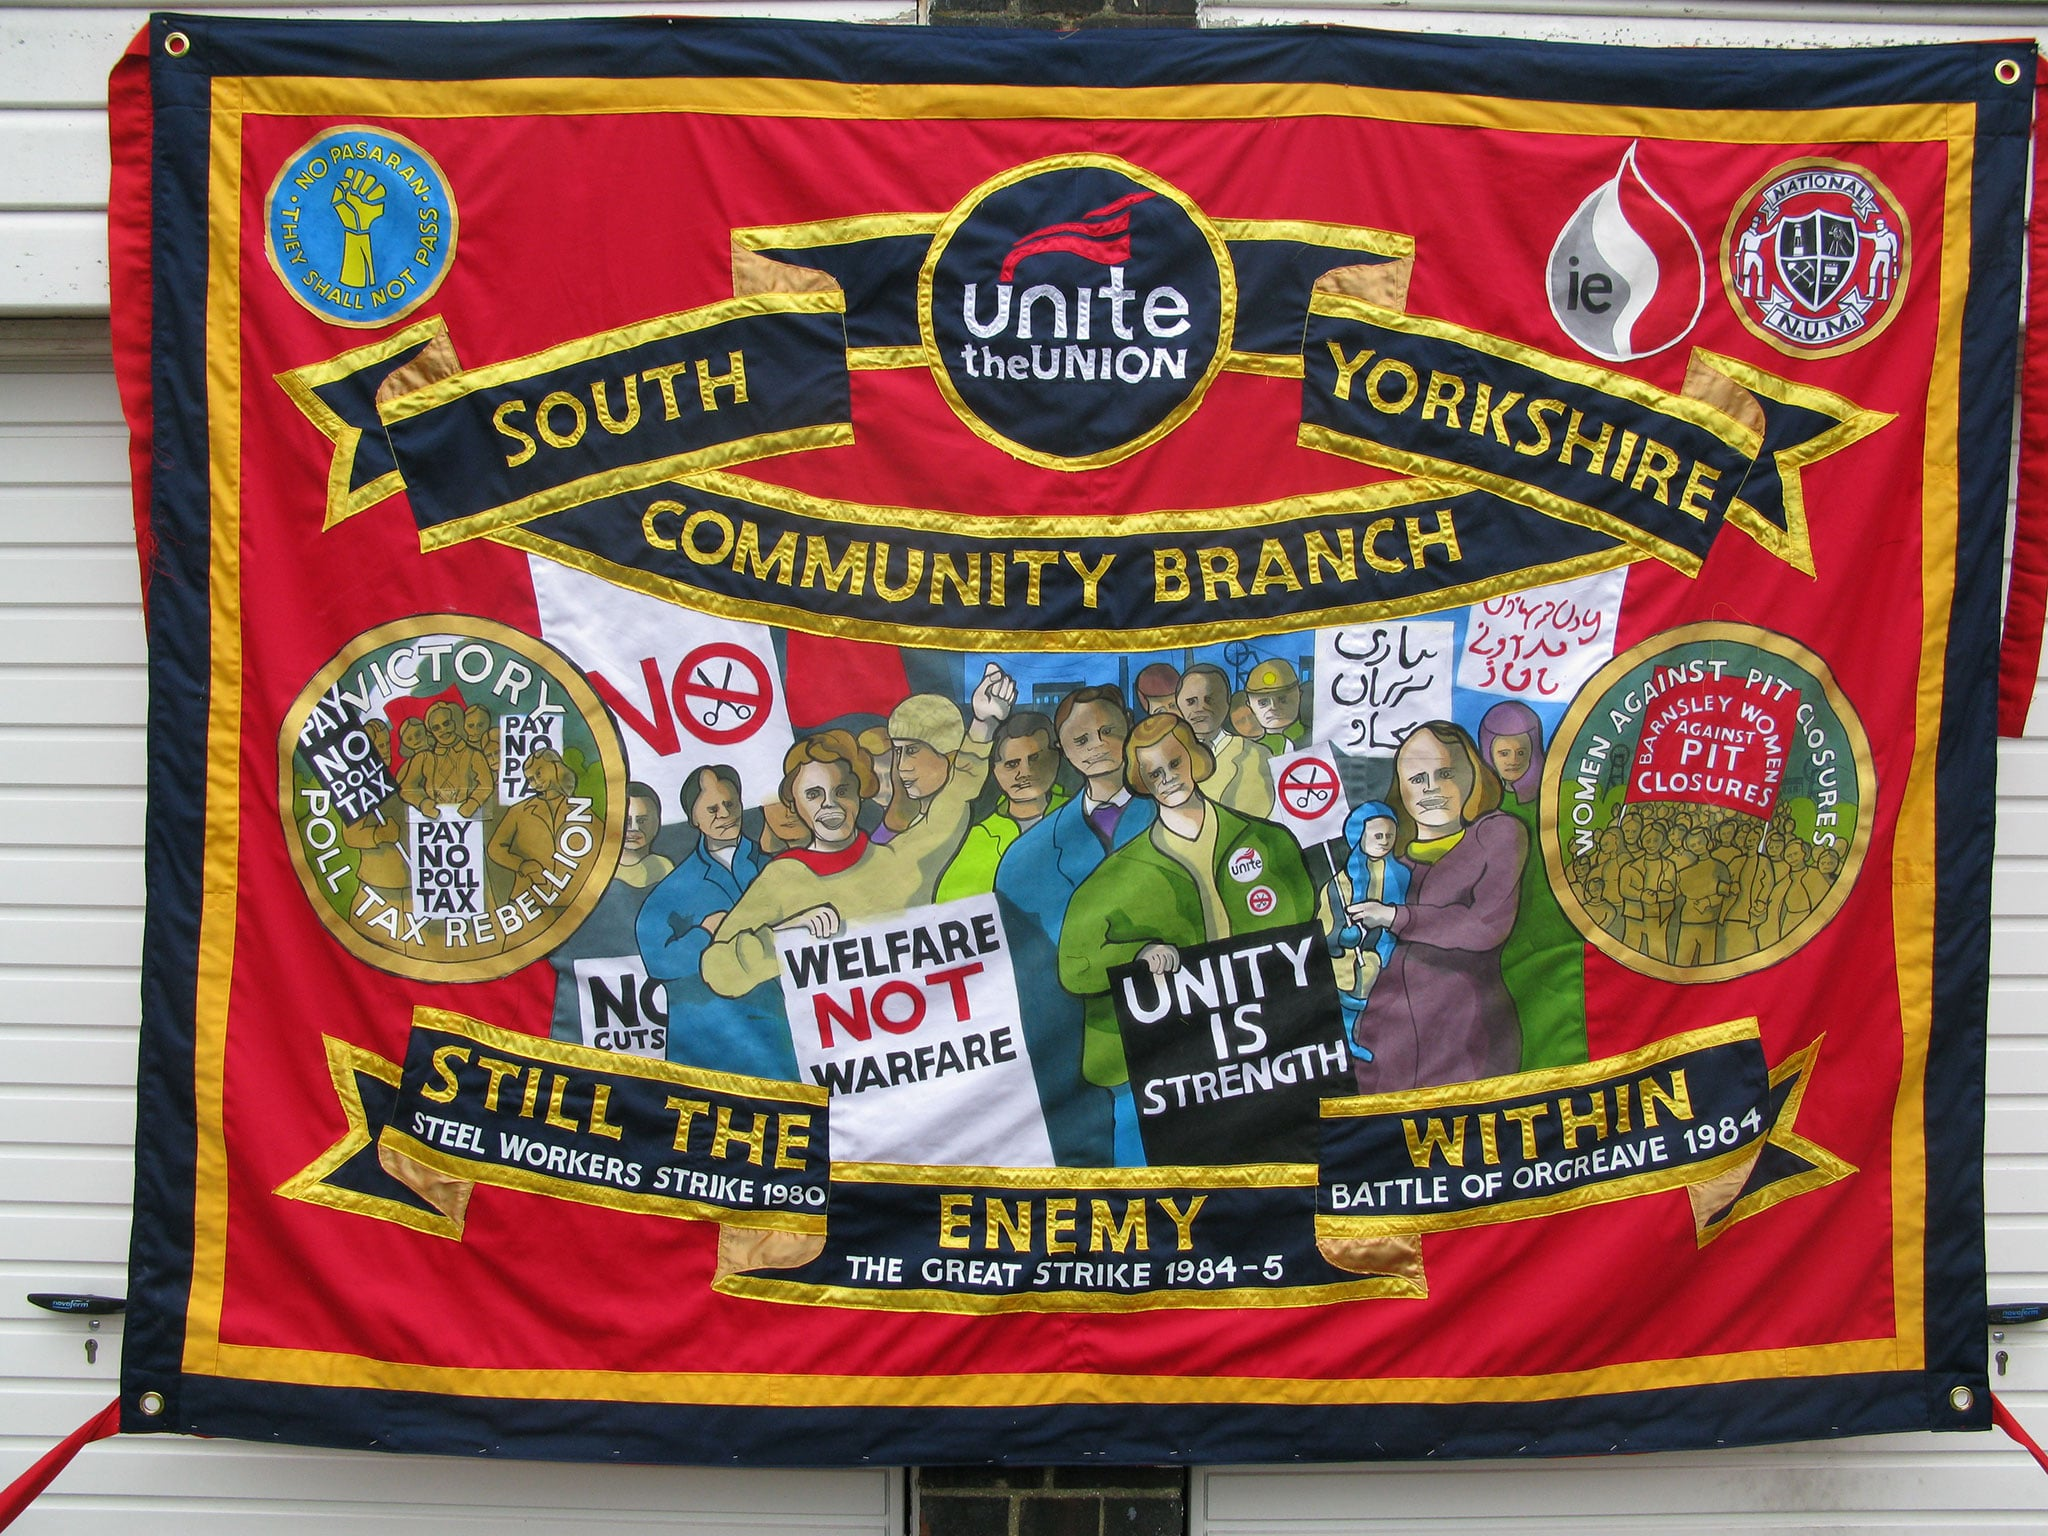 Ed Hall, Banner for UNITE the union at the march in support of the NHS in Manchester, September 2013 - Courtesy of Ed Hall